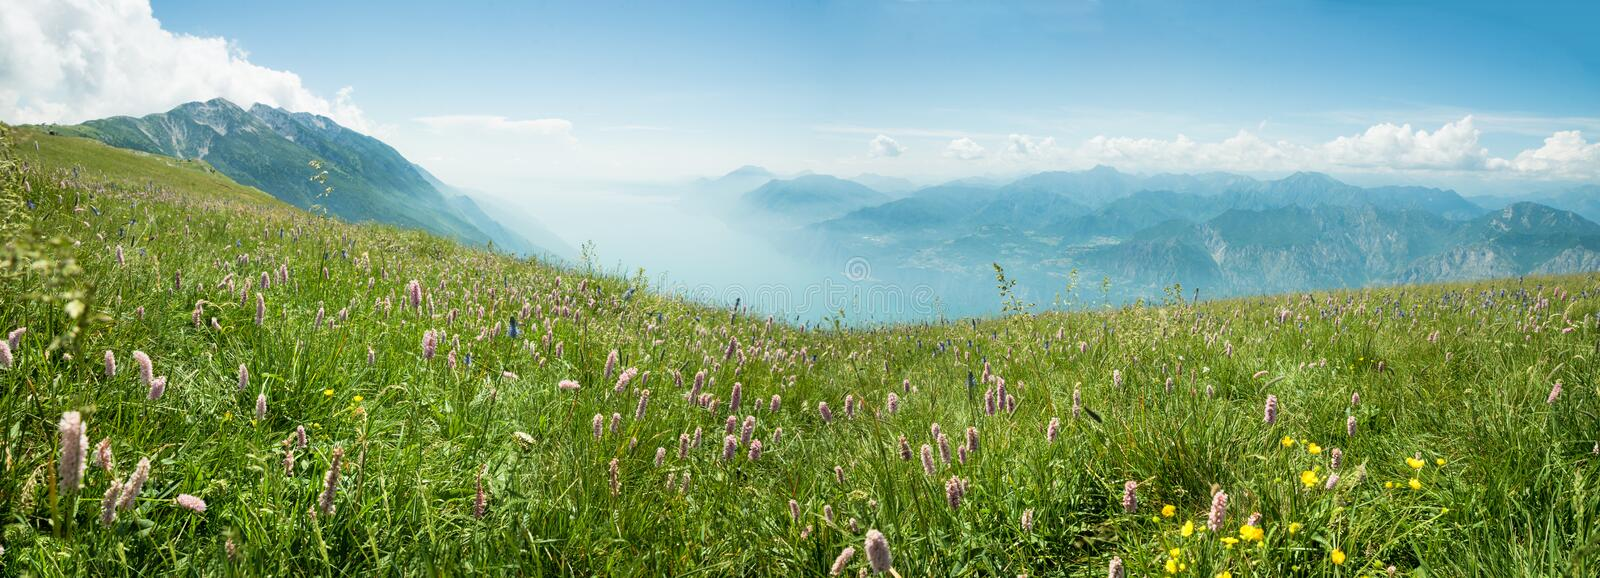 Idyllic mountain landscape monte baldo with beautiful pink knotgrass wildflower meadow and view to garda lake. Idyllic mountain landscape monte baldo with royalty free stock images